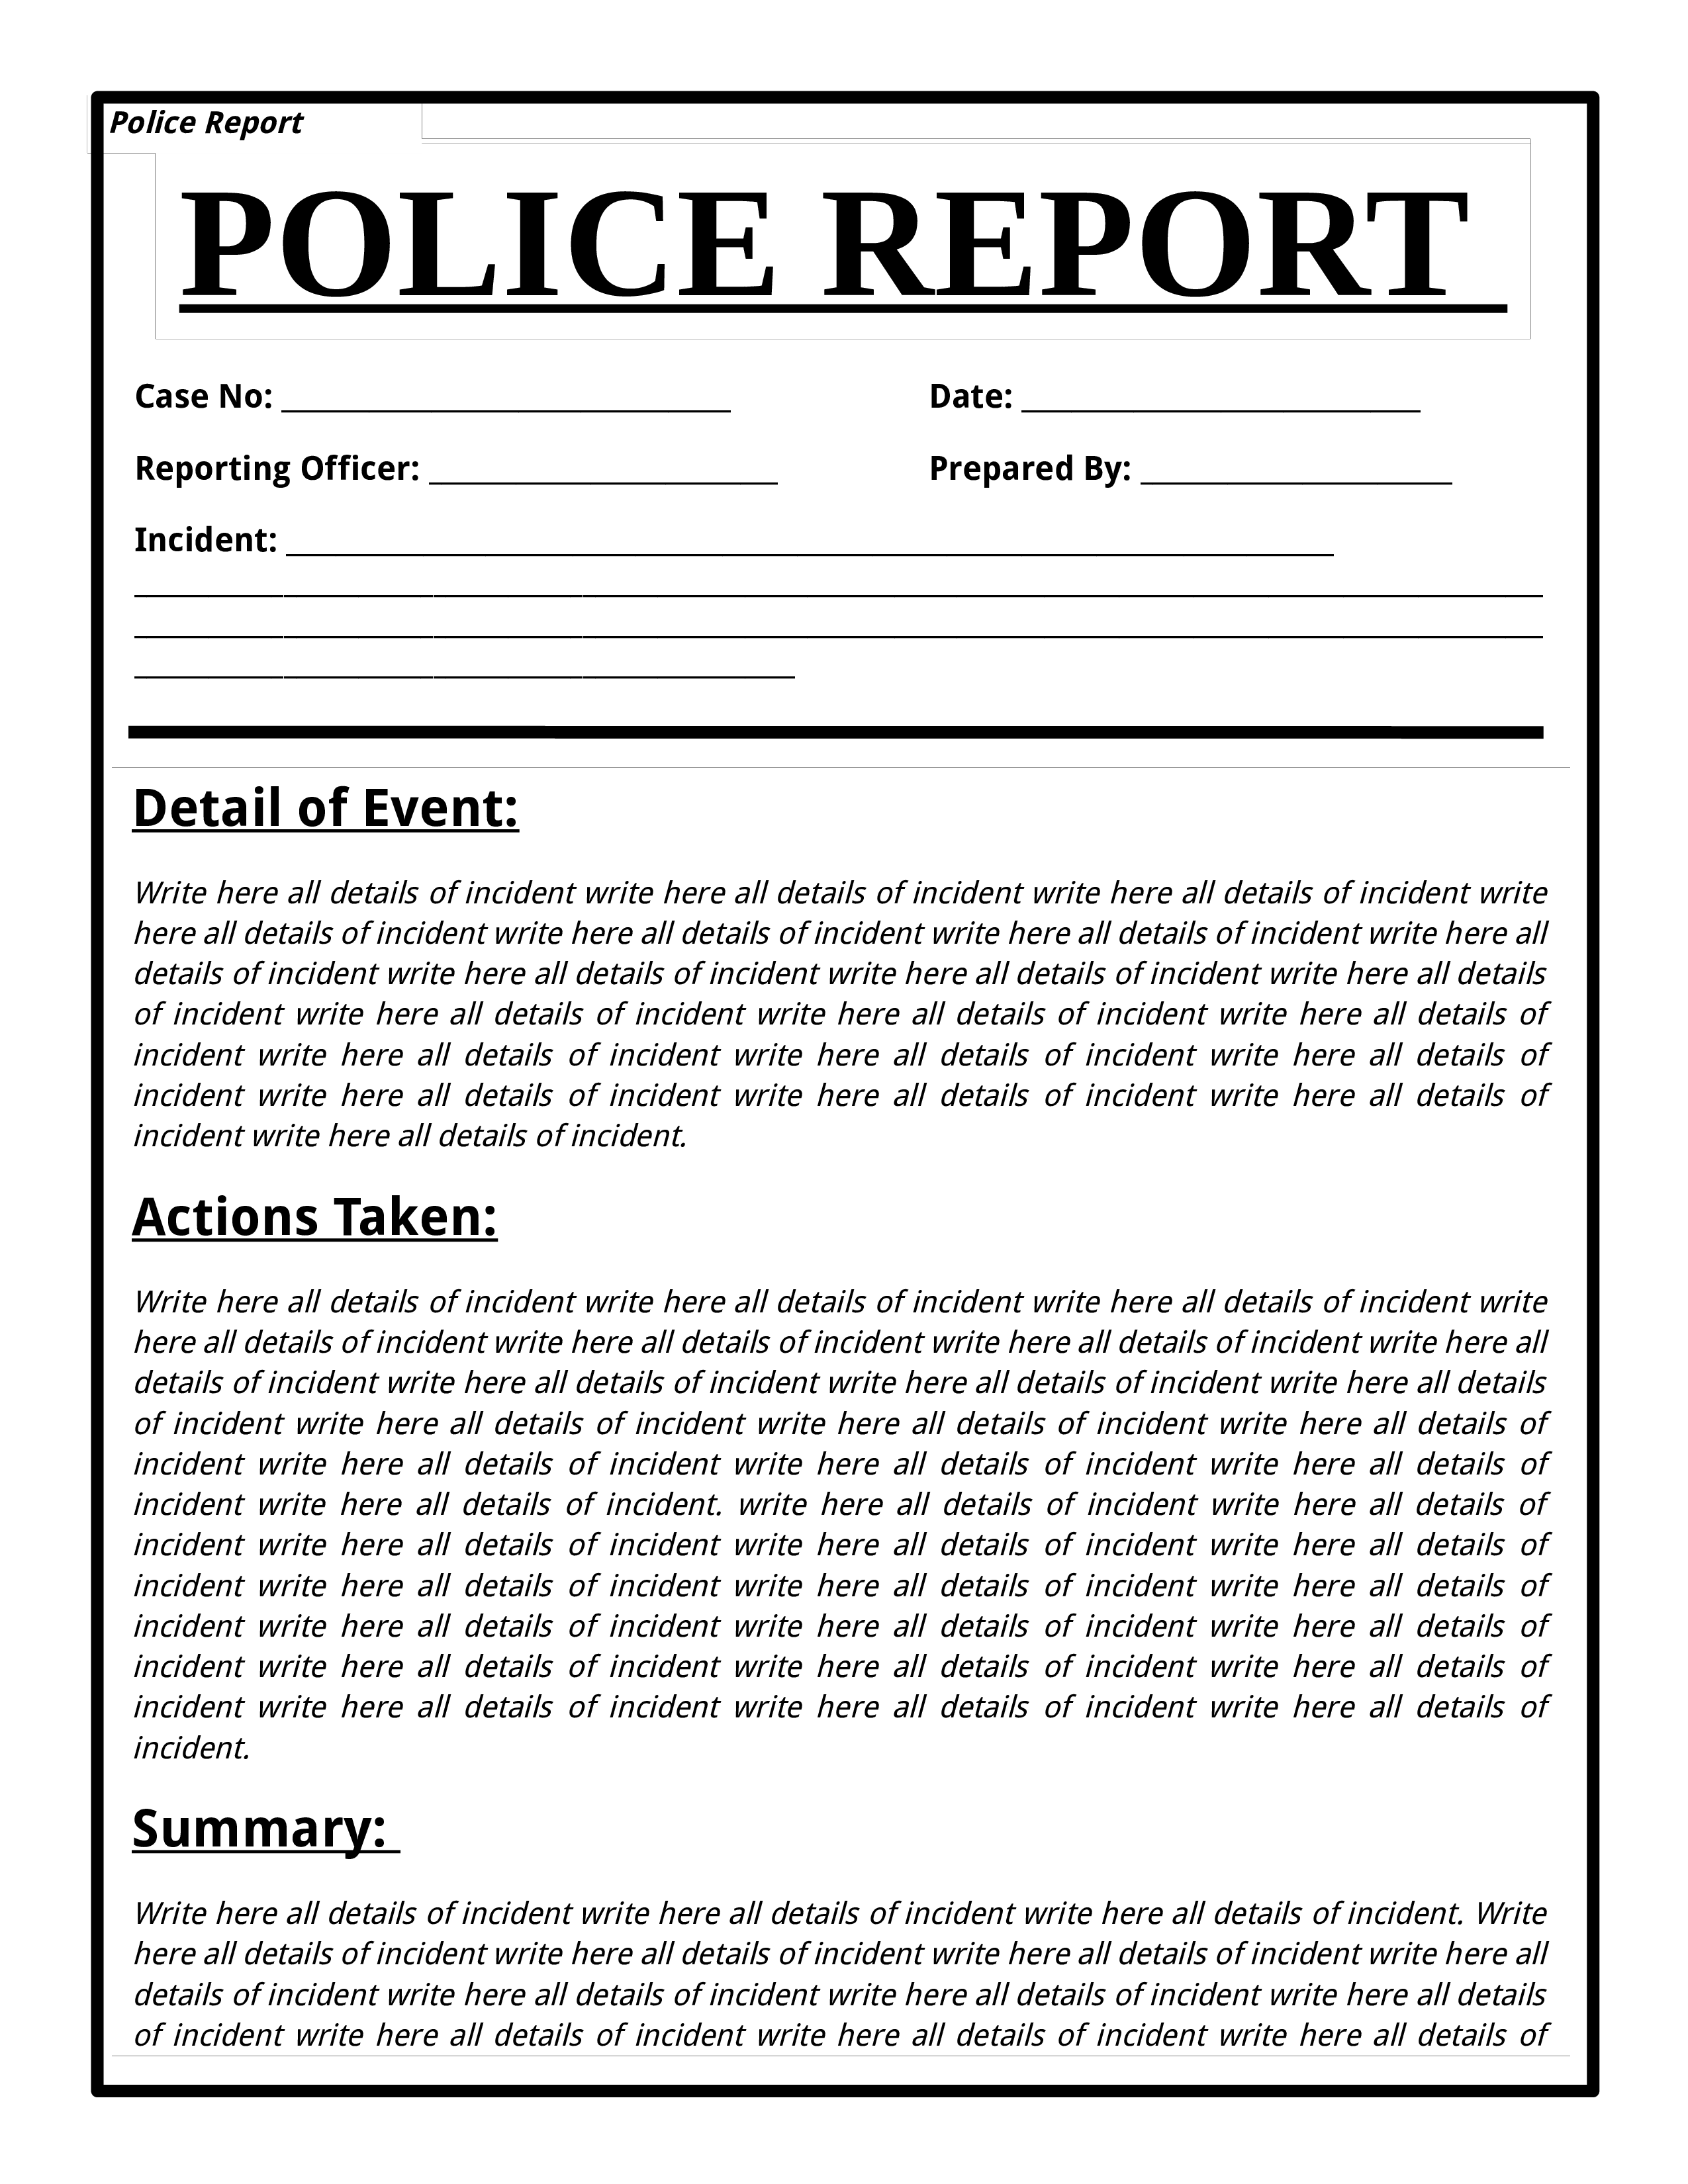 Free Police Report Template Download this Police Report